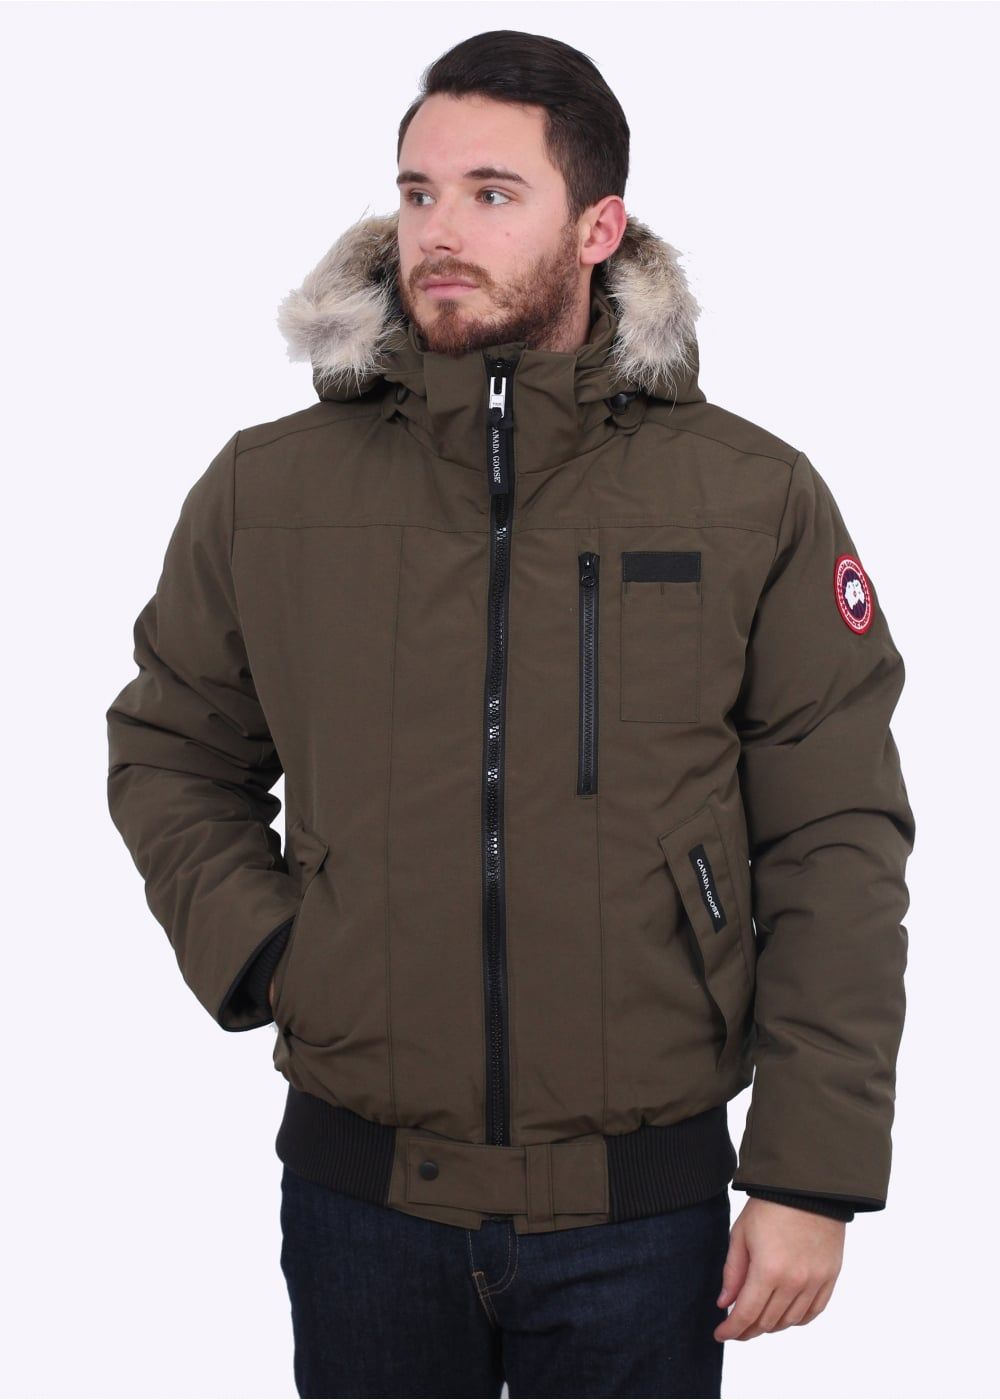 7935f7201c1 Canada Goose Borden Bomber Jacket - Military Green